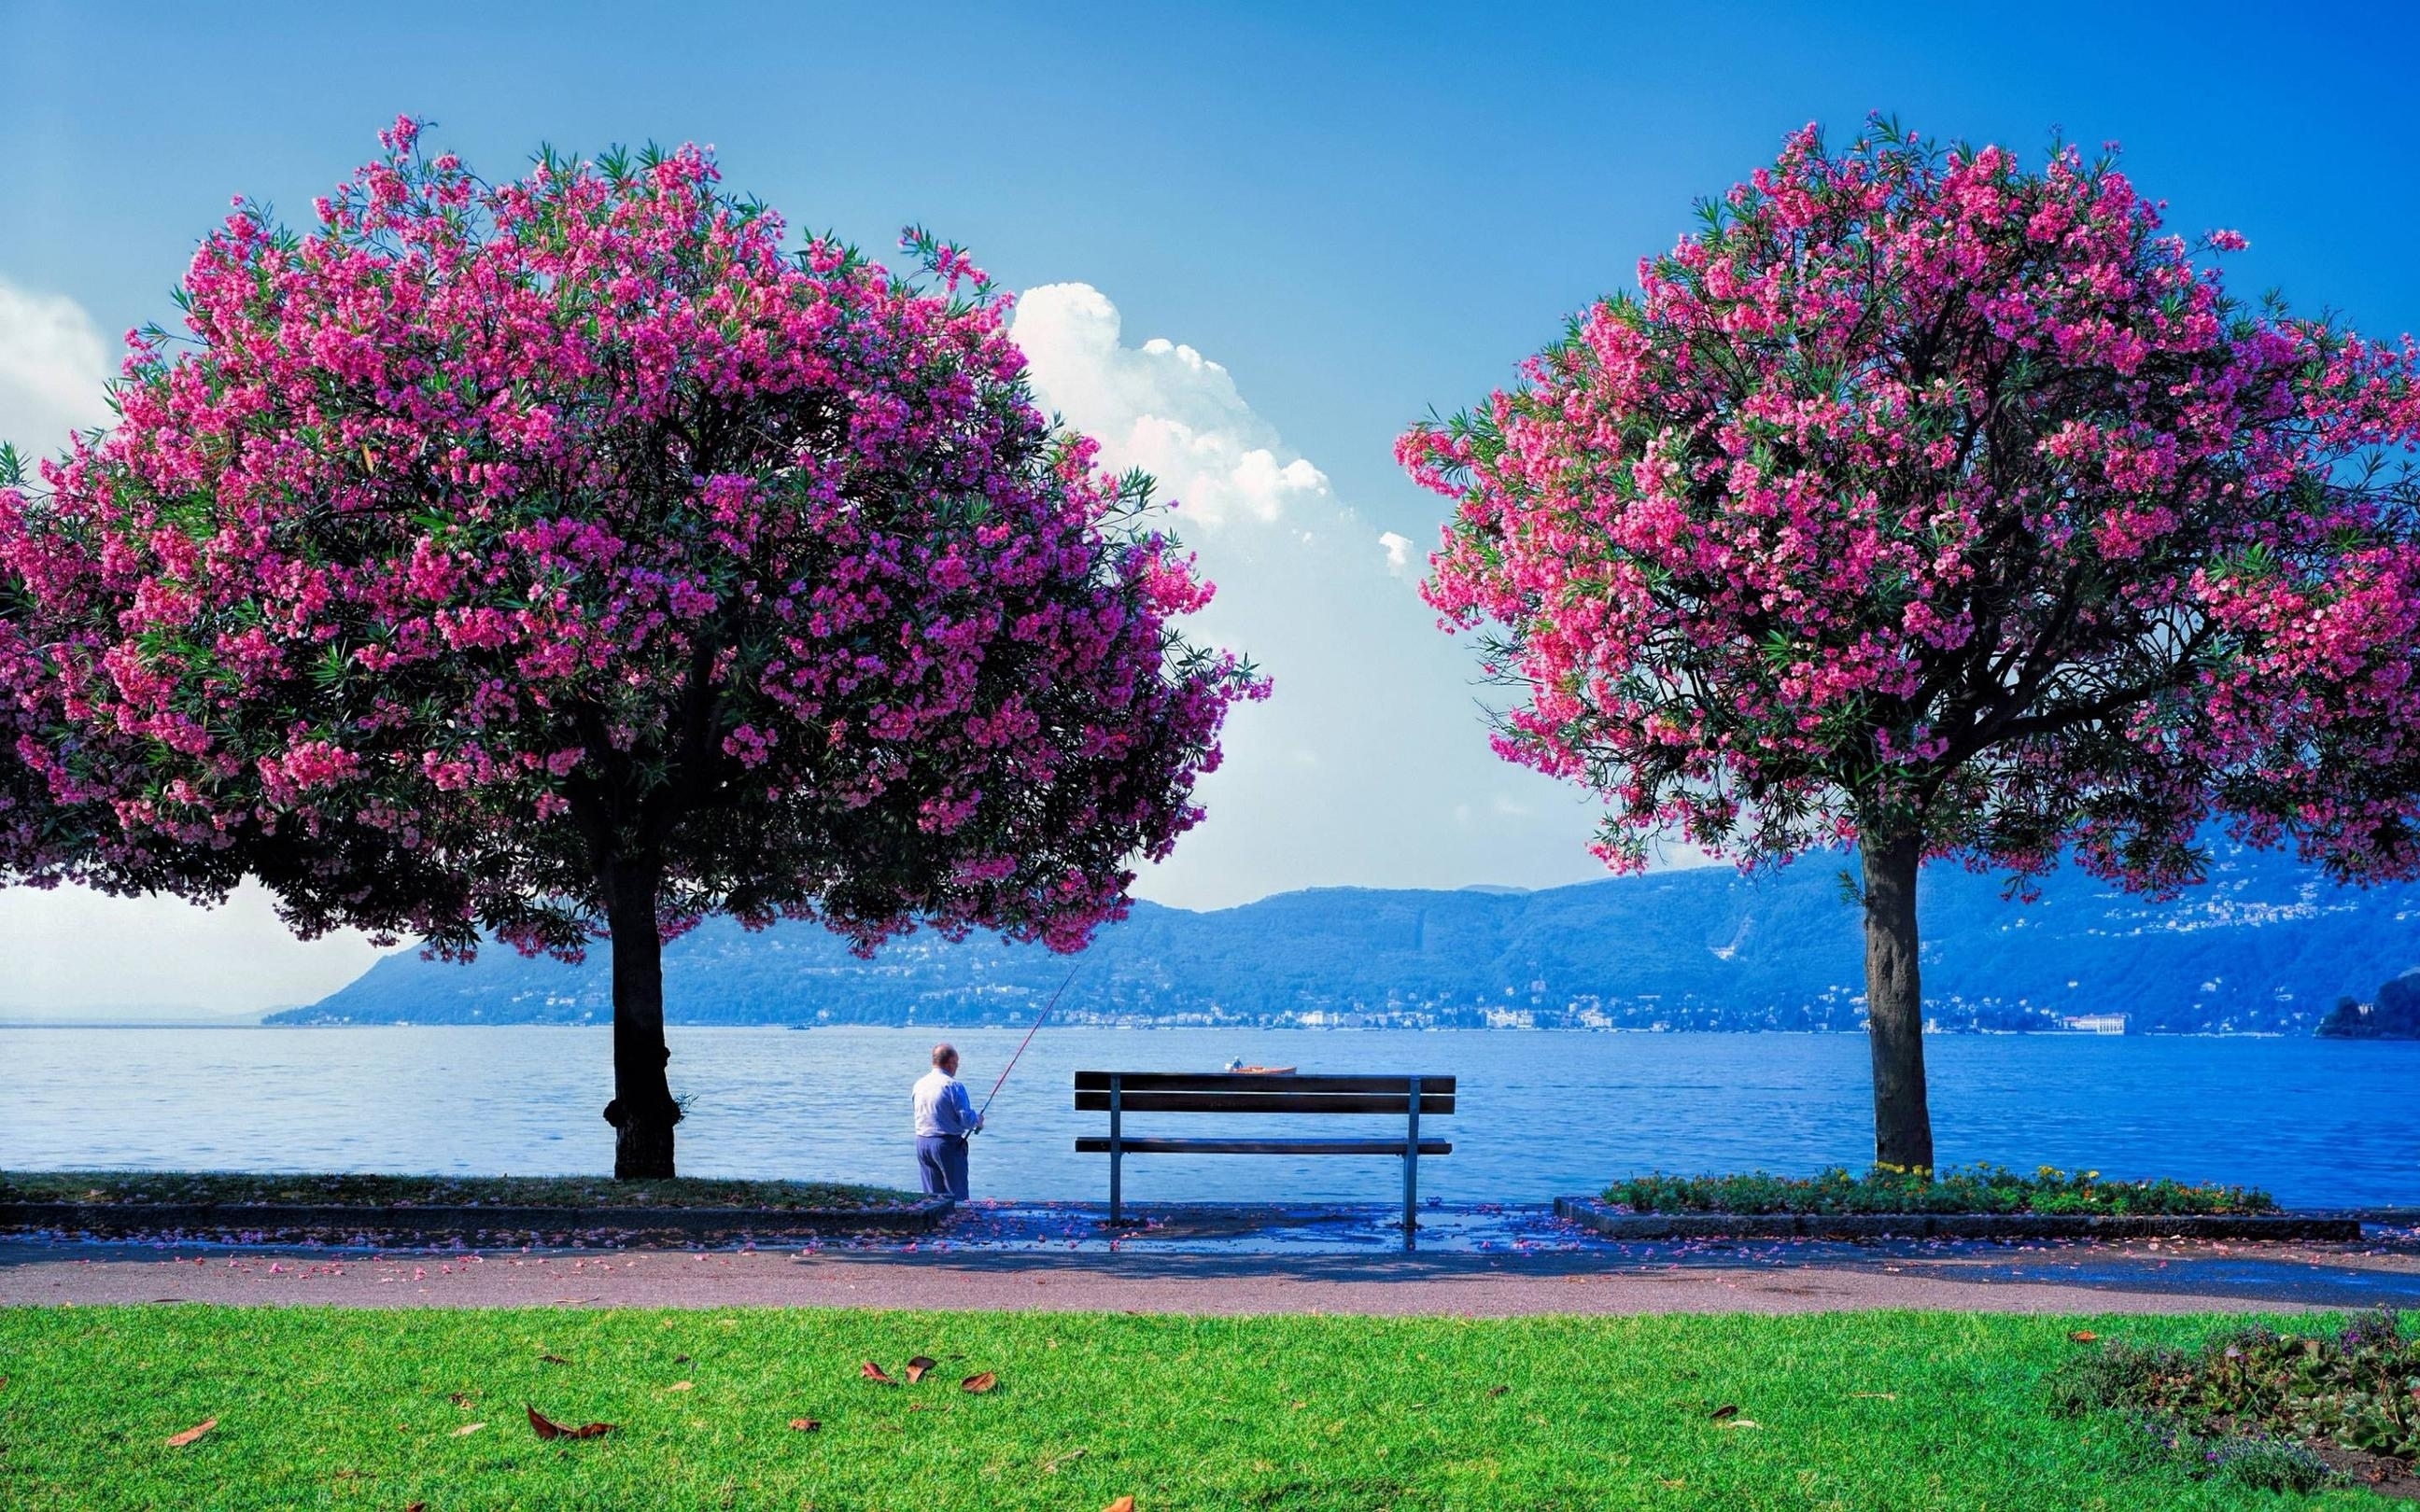 10 most popular wallpapers hd nature spring full hd 1080p - Most popular hd wallpapers 1080p ...